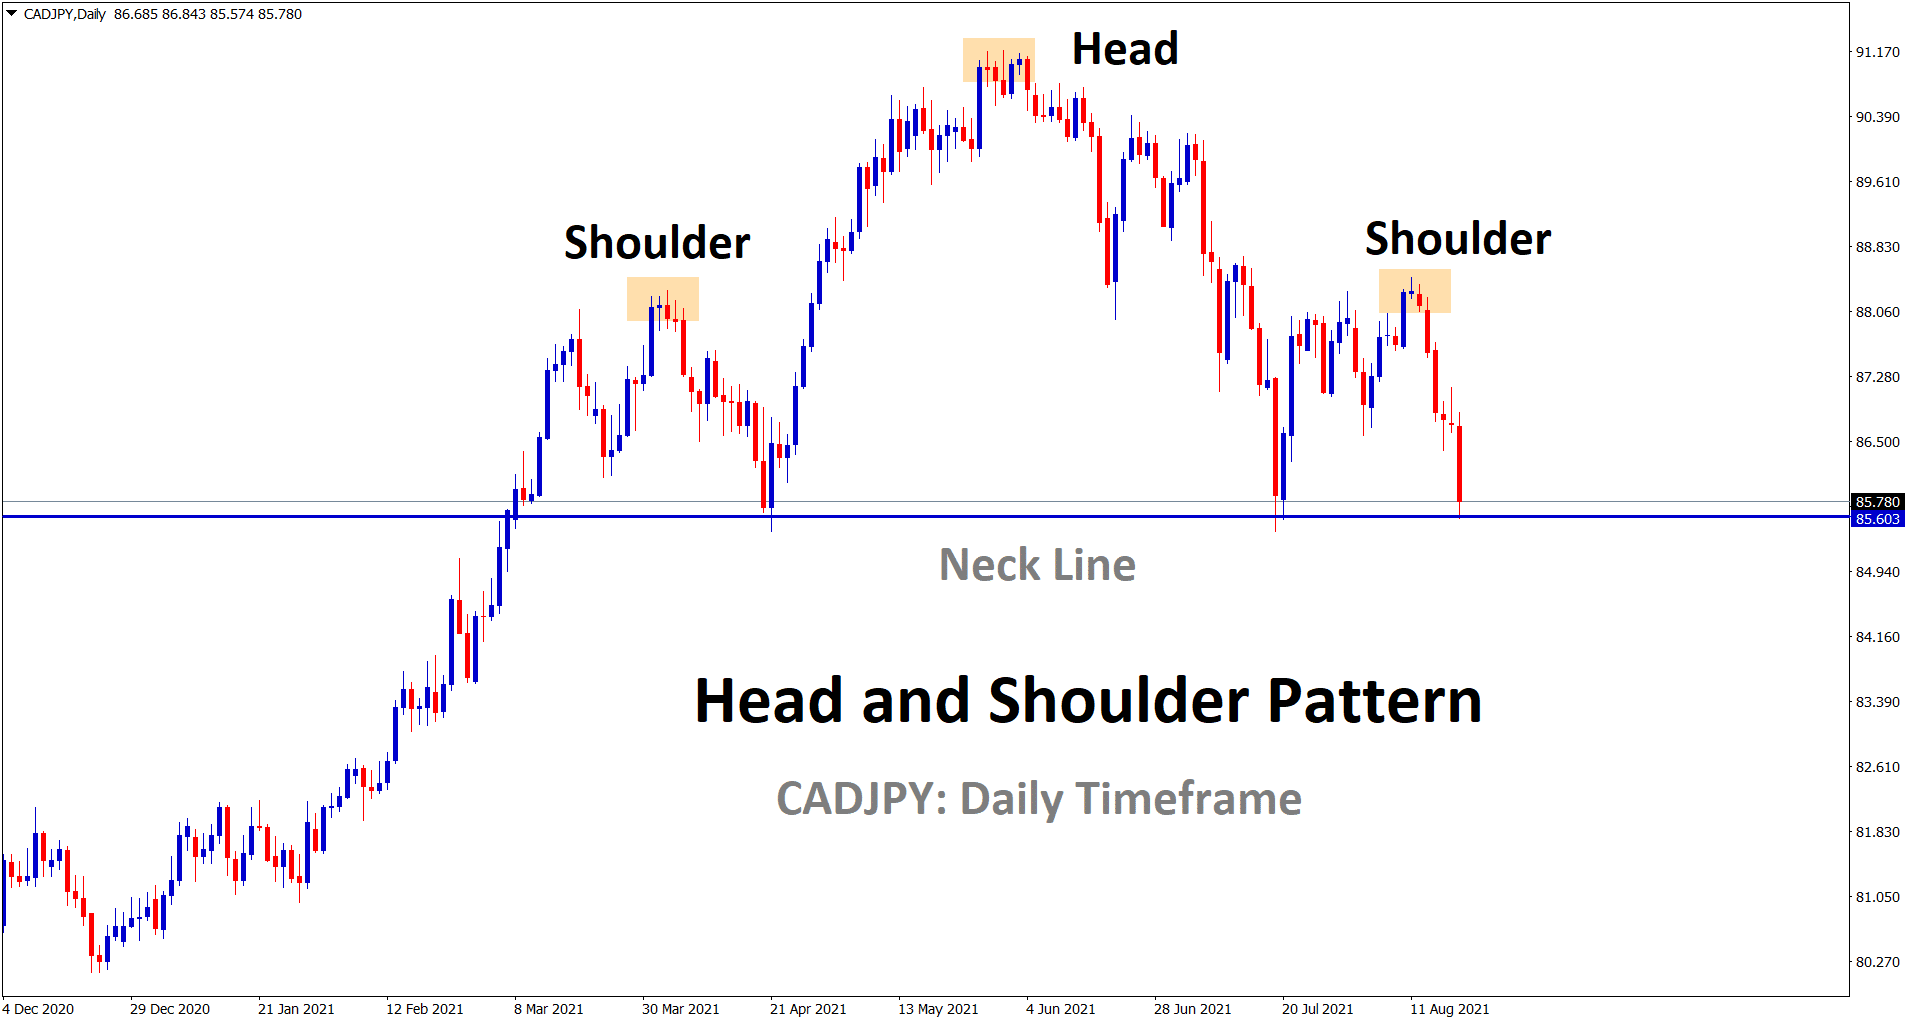 CADJPY has formed the head and shoulder pattern in the daily timeframe